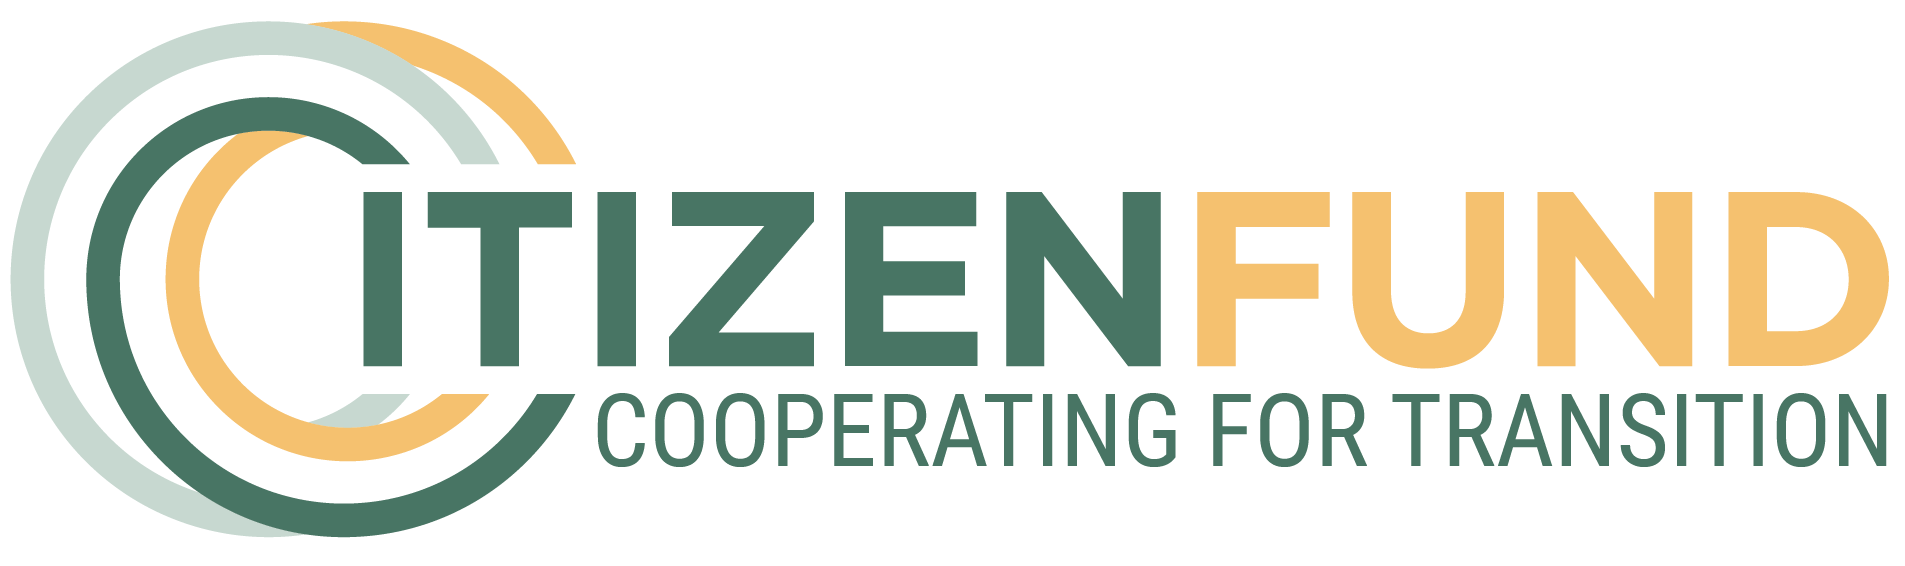 Citizenfund